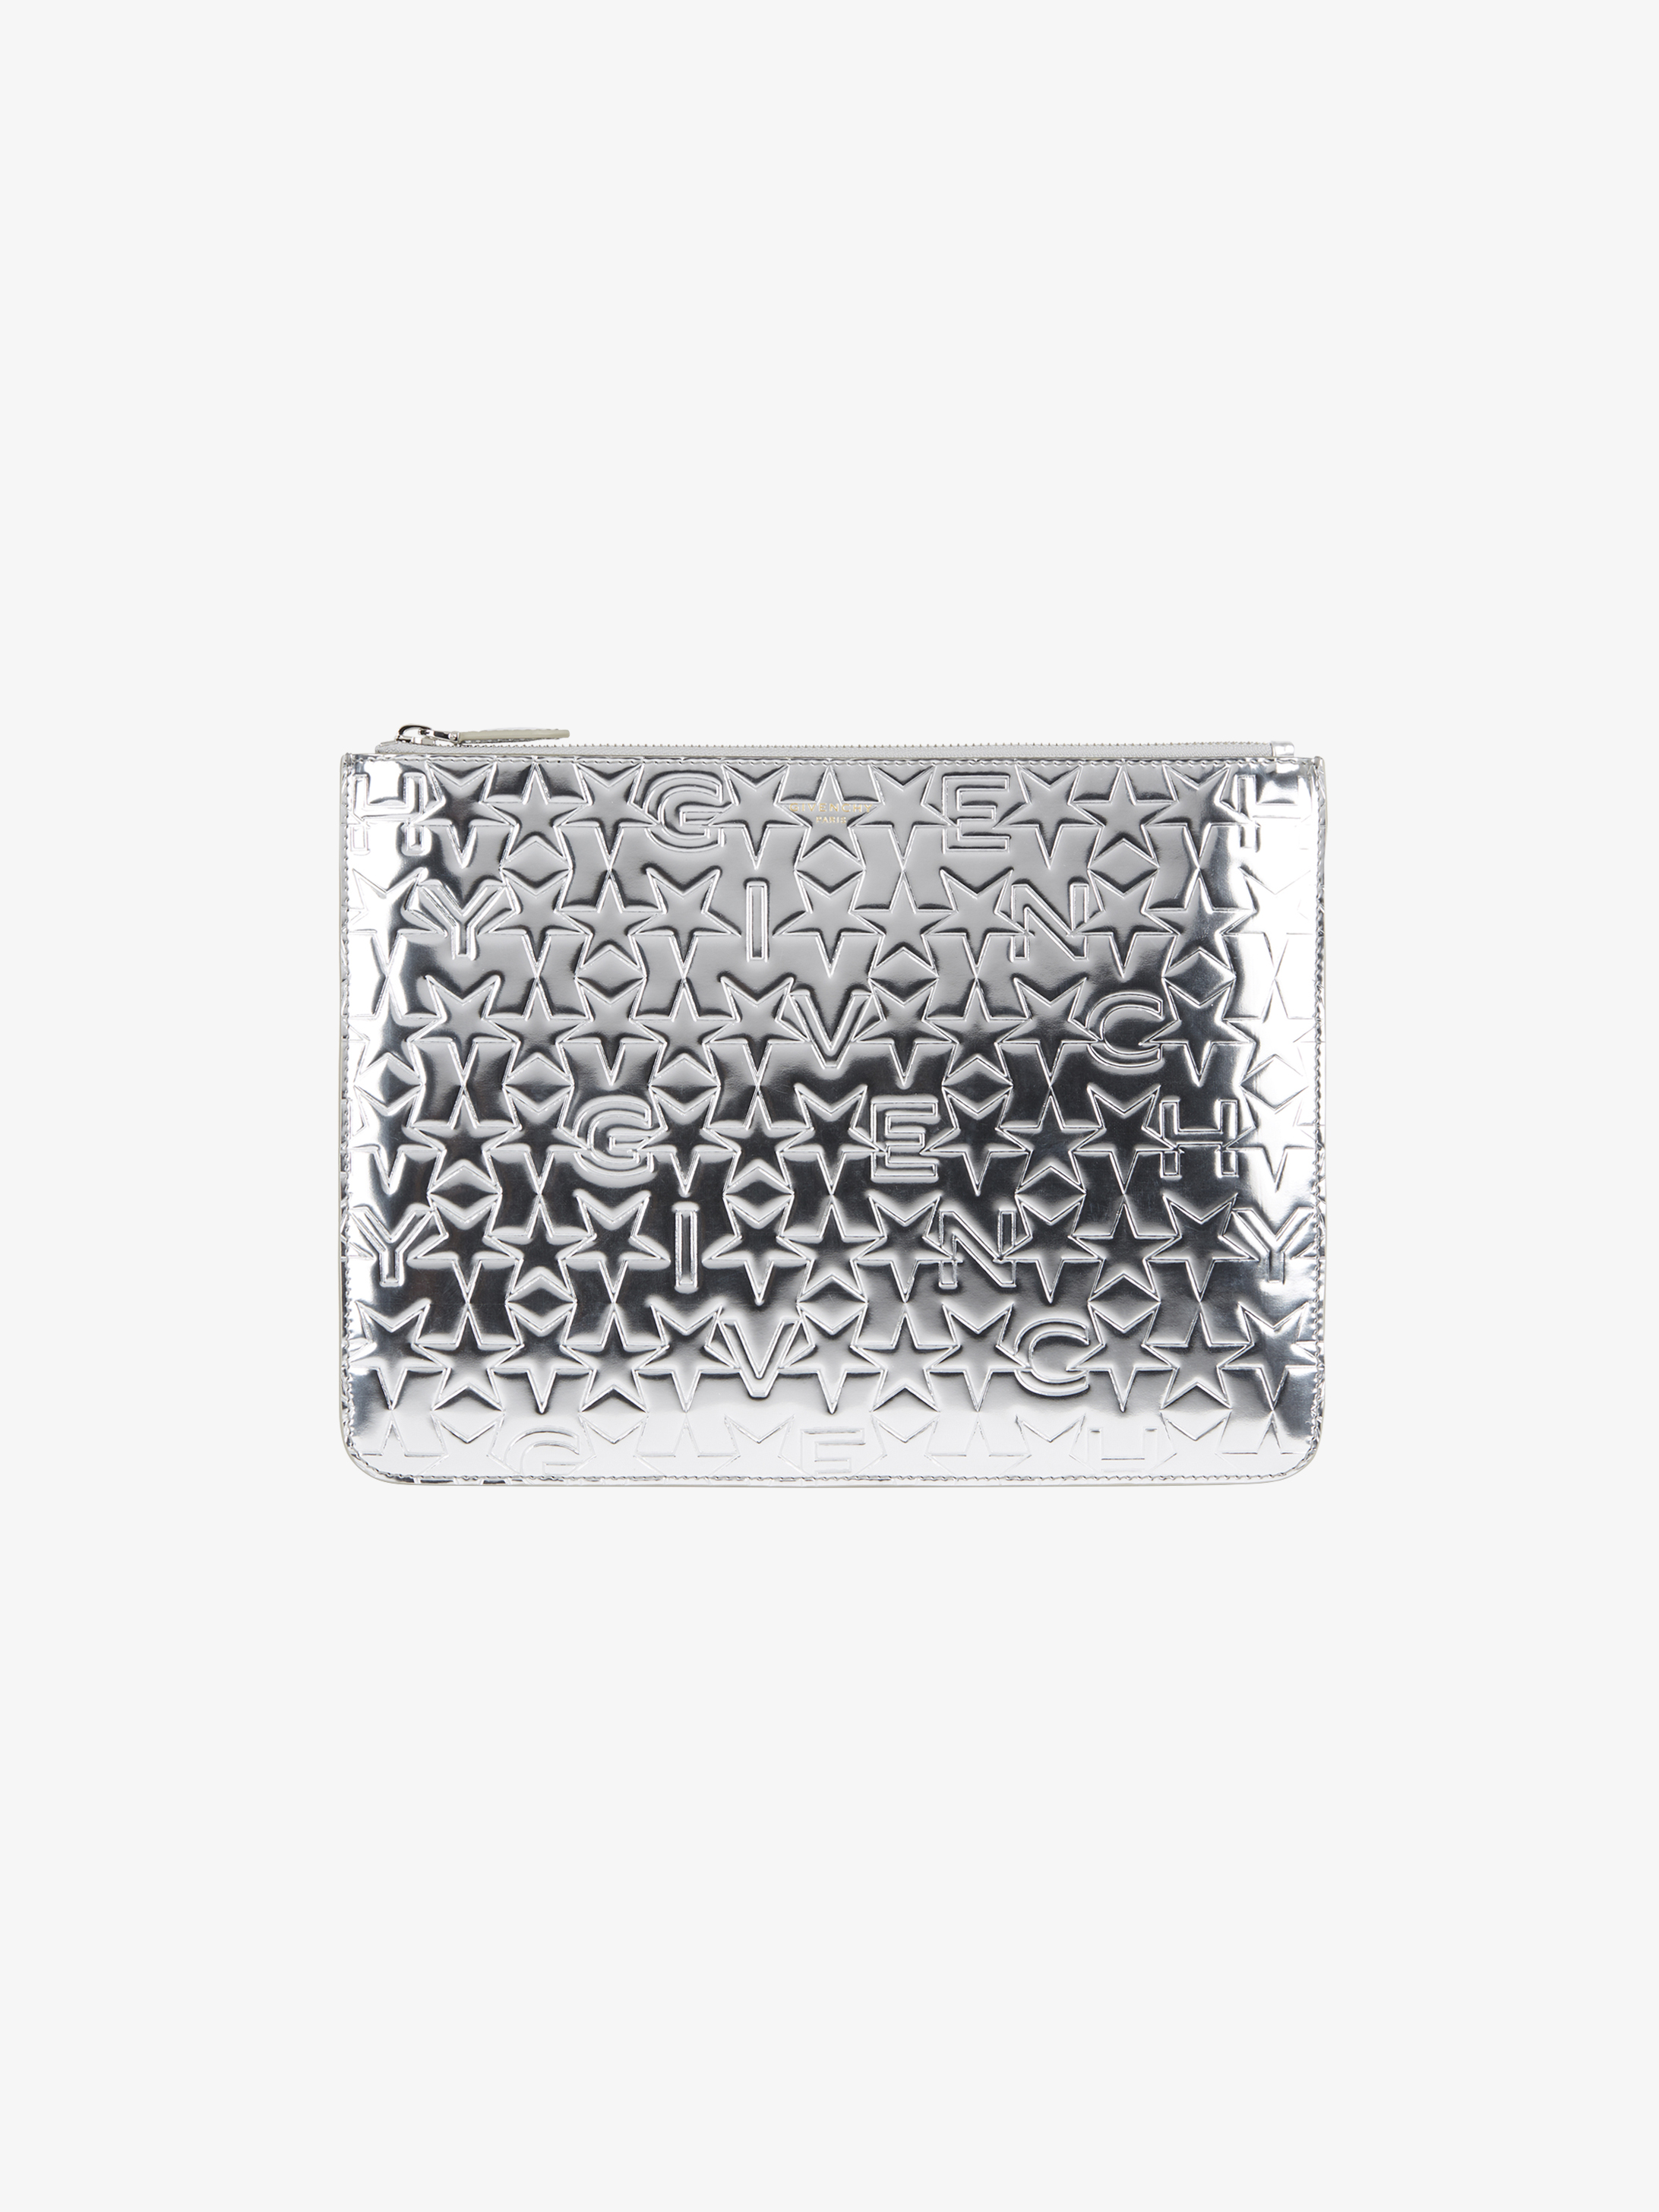 GIVENCHY & Stars embossed pouch in leather